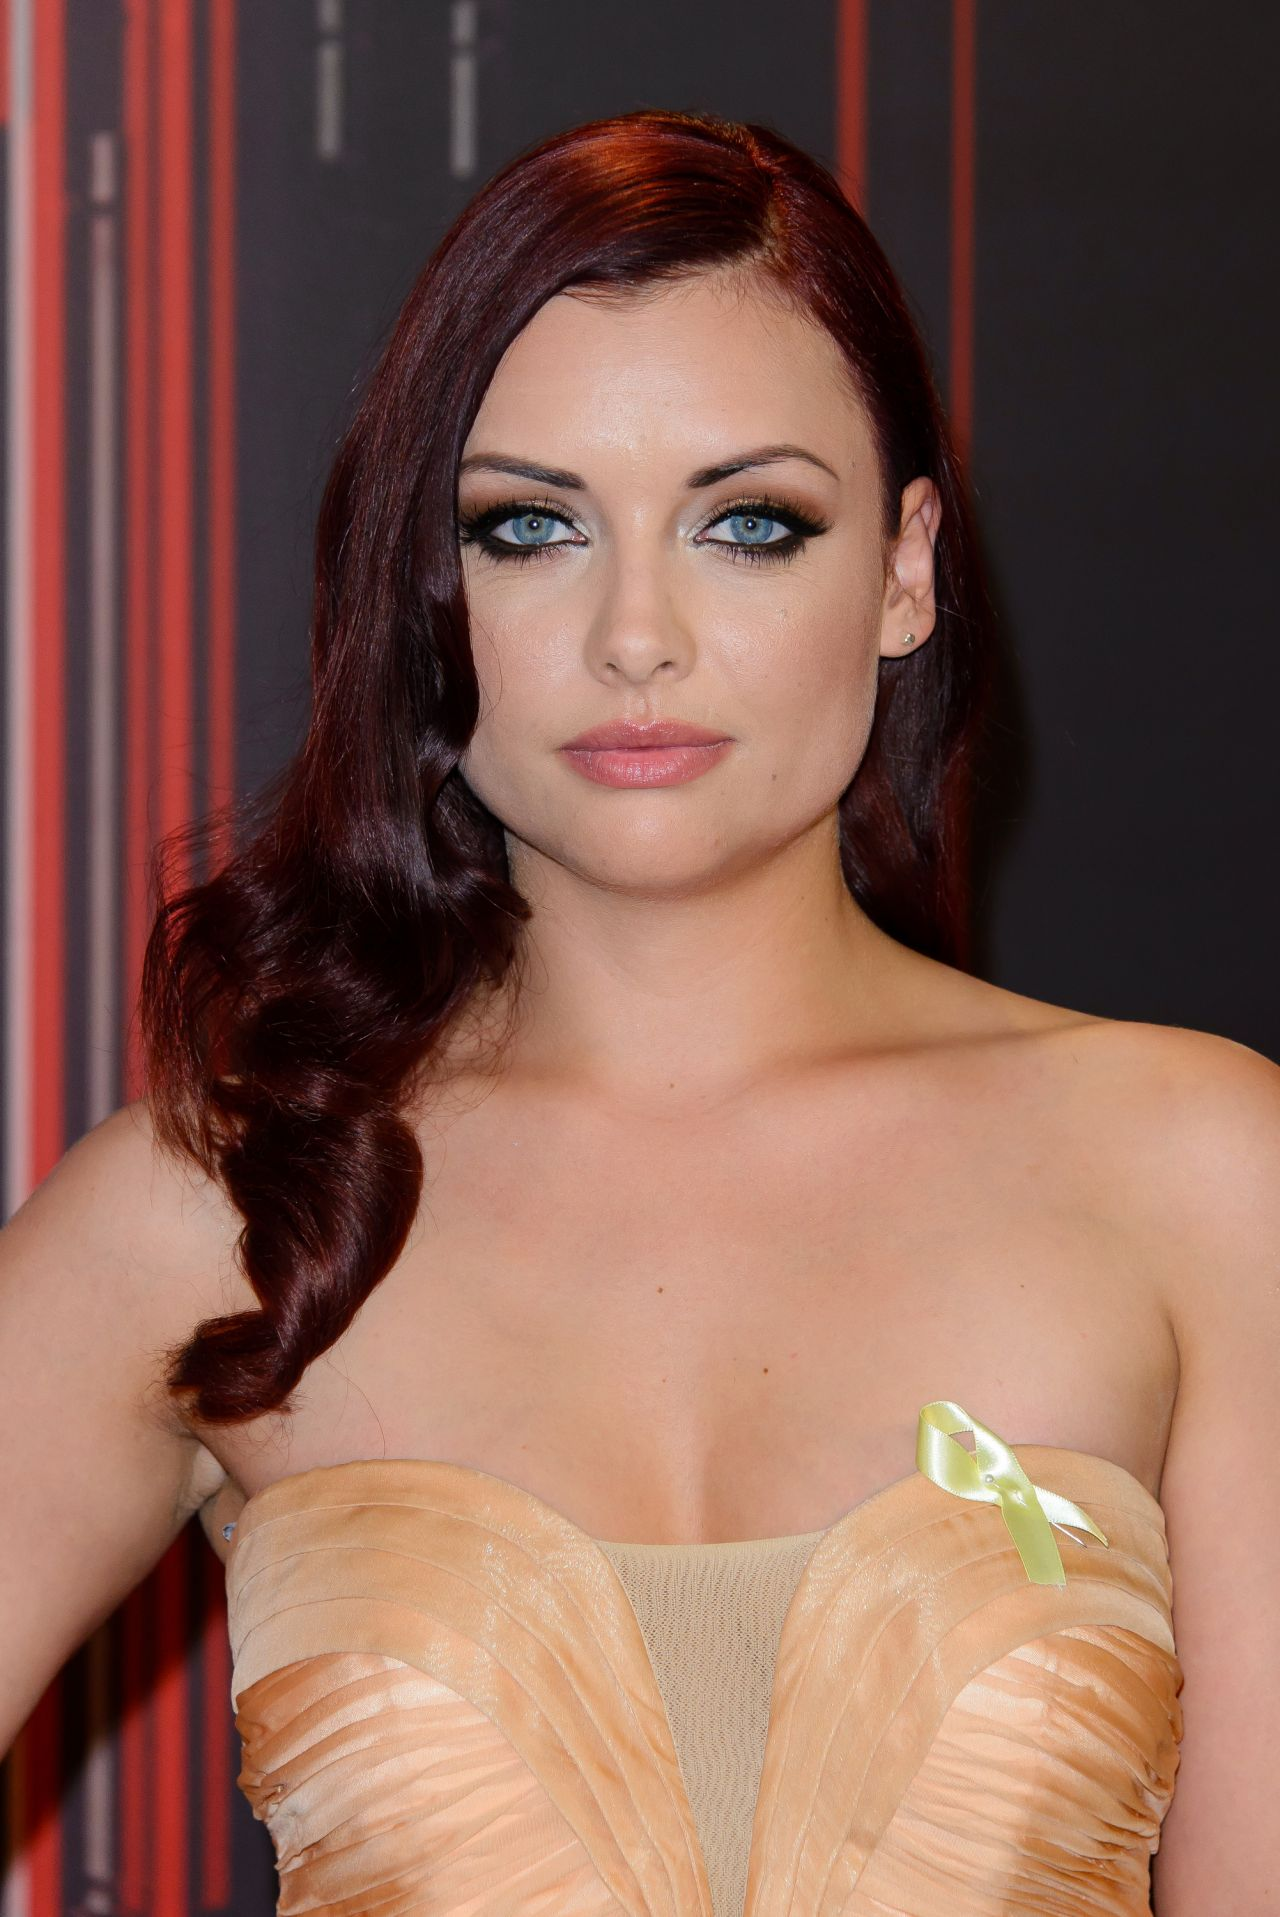 Twitter Shona McGarty naked (18 photos), Tits, Bikini, Feet, lingerie 2015